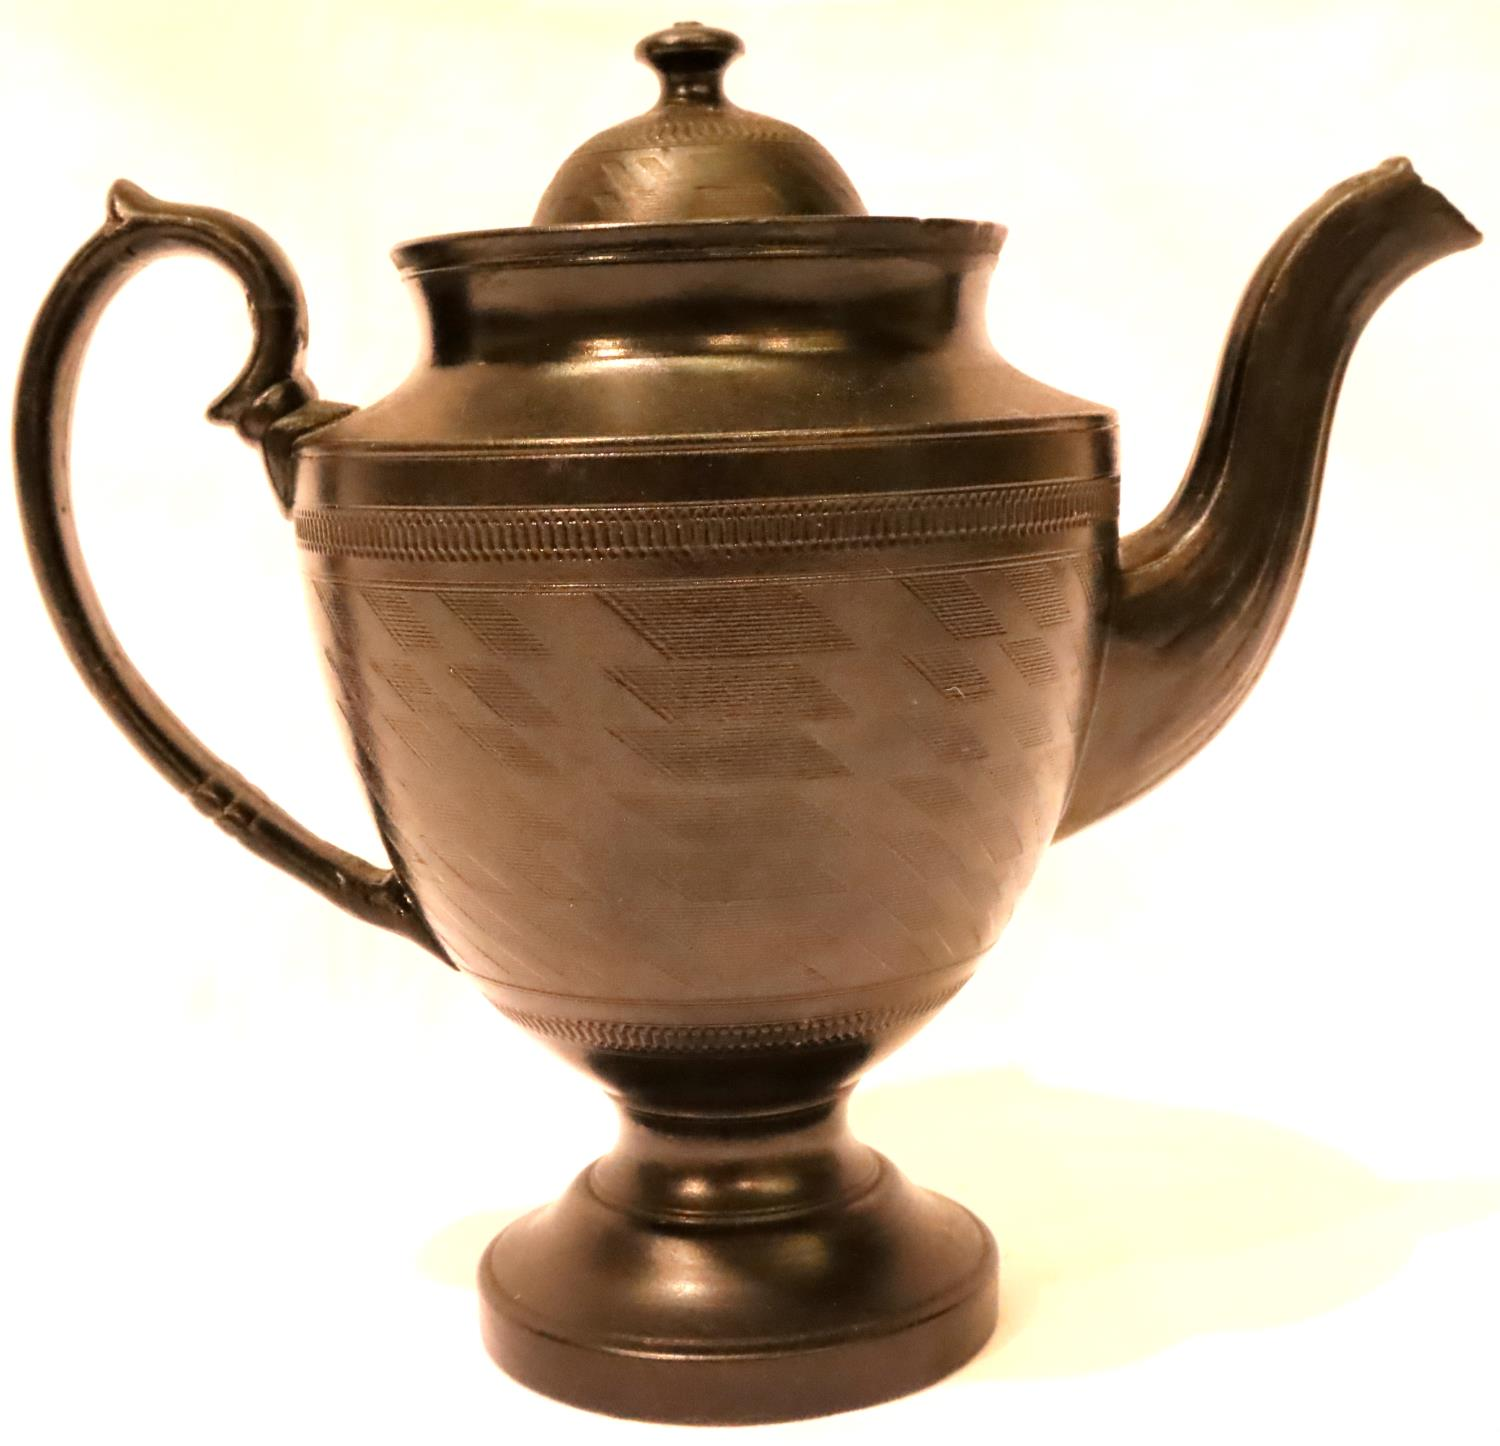 Victorian Jackfield teapot in black, H: 19 cm. P&P Group 2 (£18+VAT for the first lot and £3+VAT for